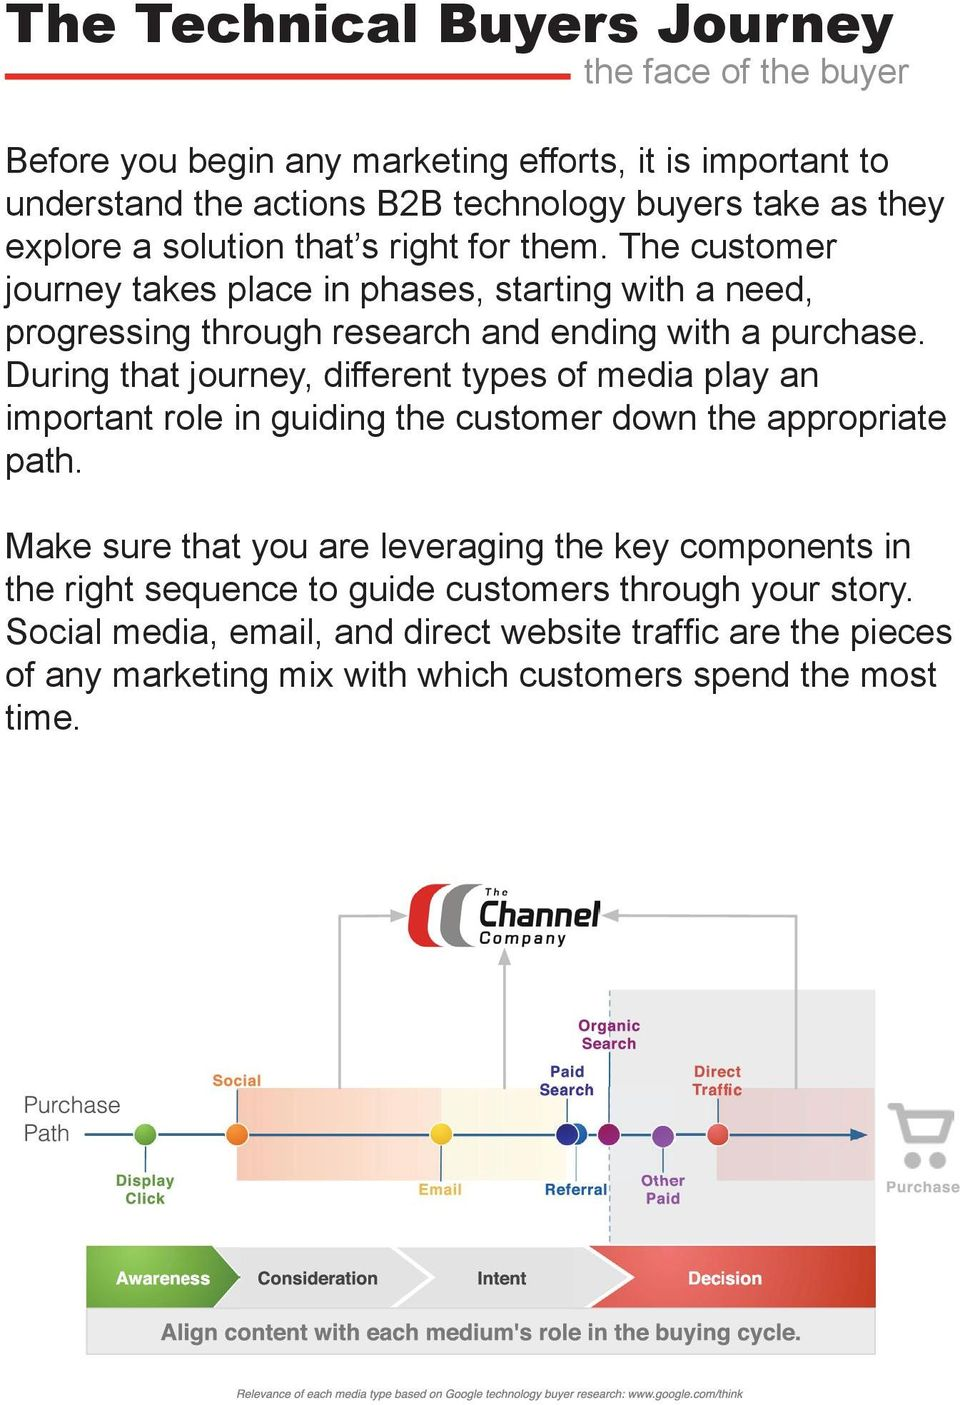 During that journey, different types of media play an important role in guiding the customer down the appropriate path.